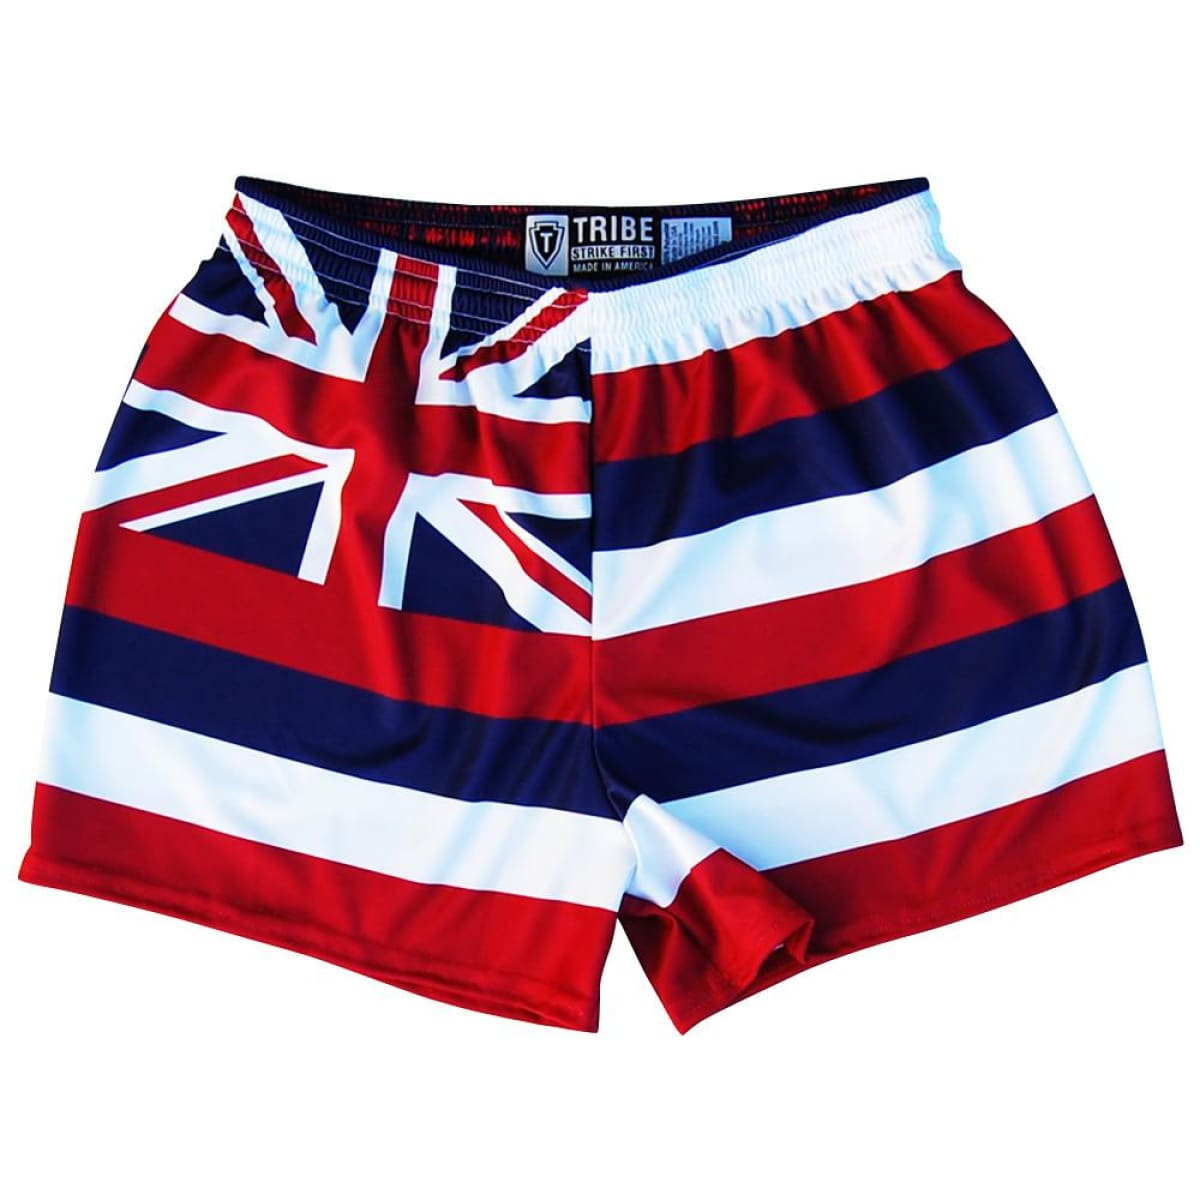 Hawaii Flag Womens & Girls Sport Shorts by Mile End - Red Blue White / Youth Small - Womens Sport Shorts